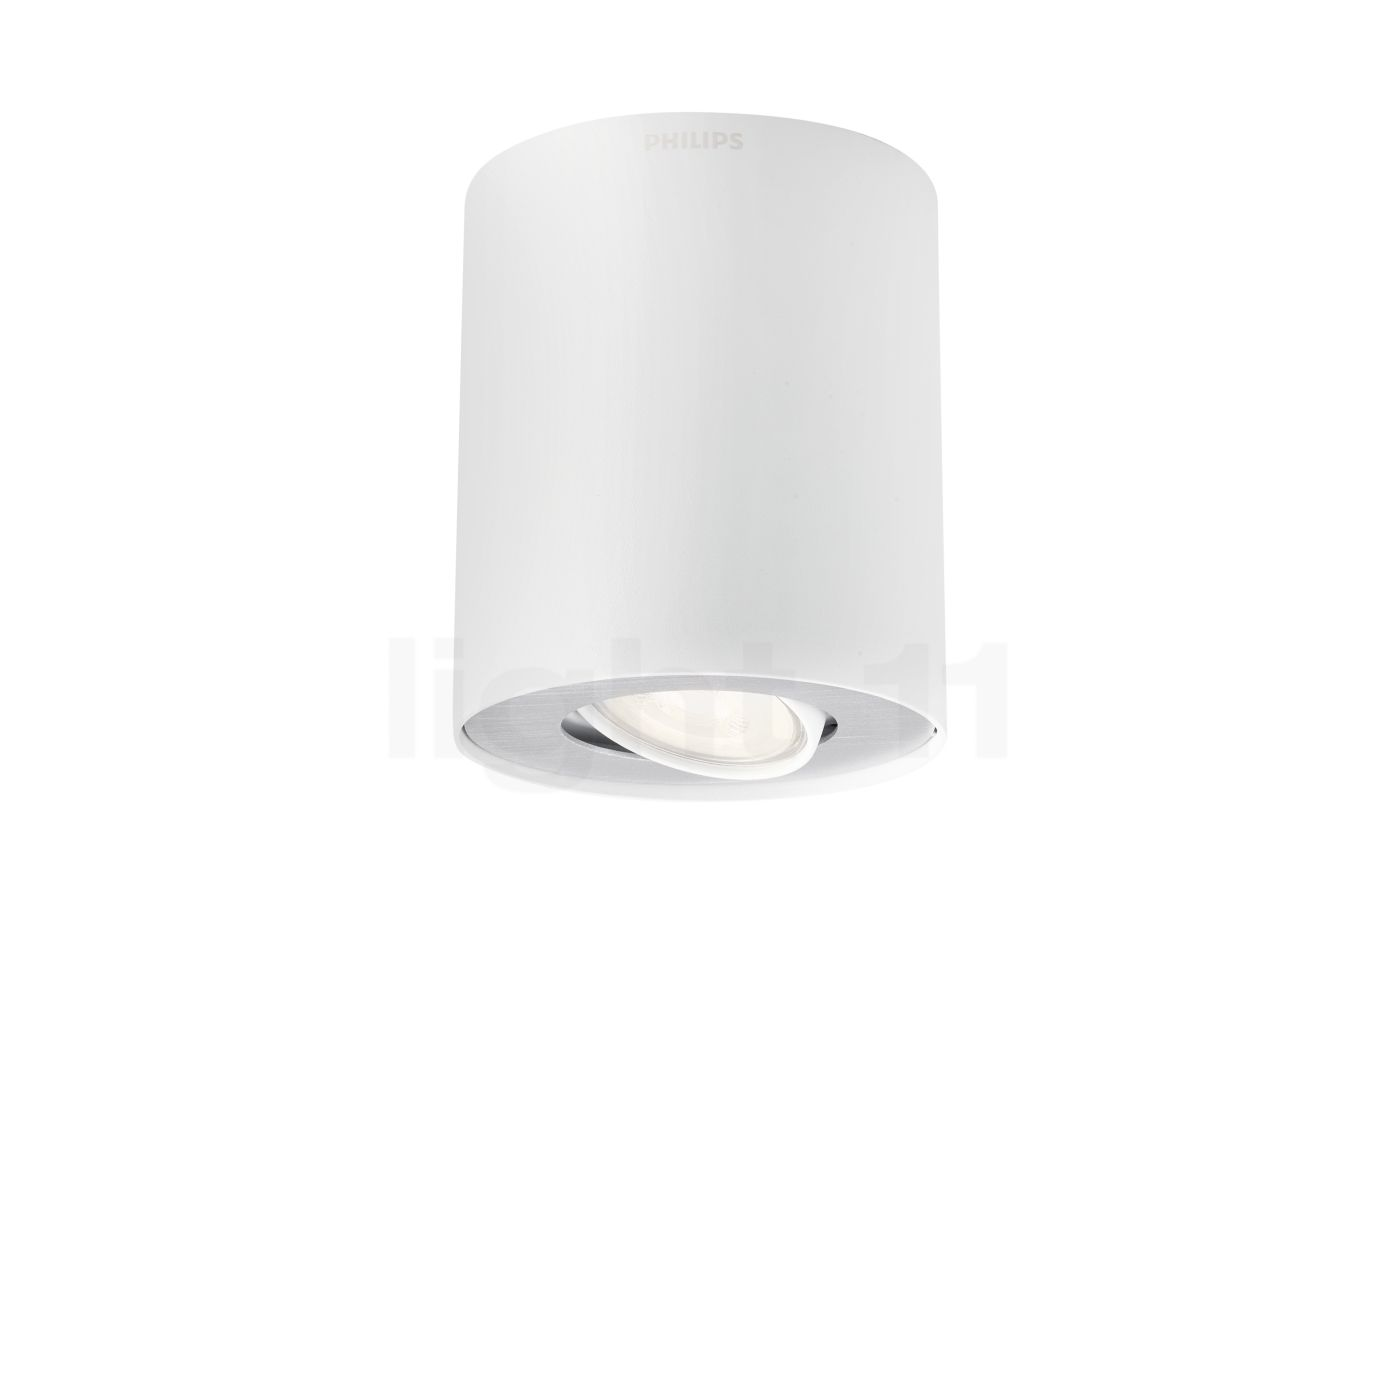 Philips MyLiving myLiving Pendant MA 403391116 chrome ...